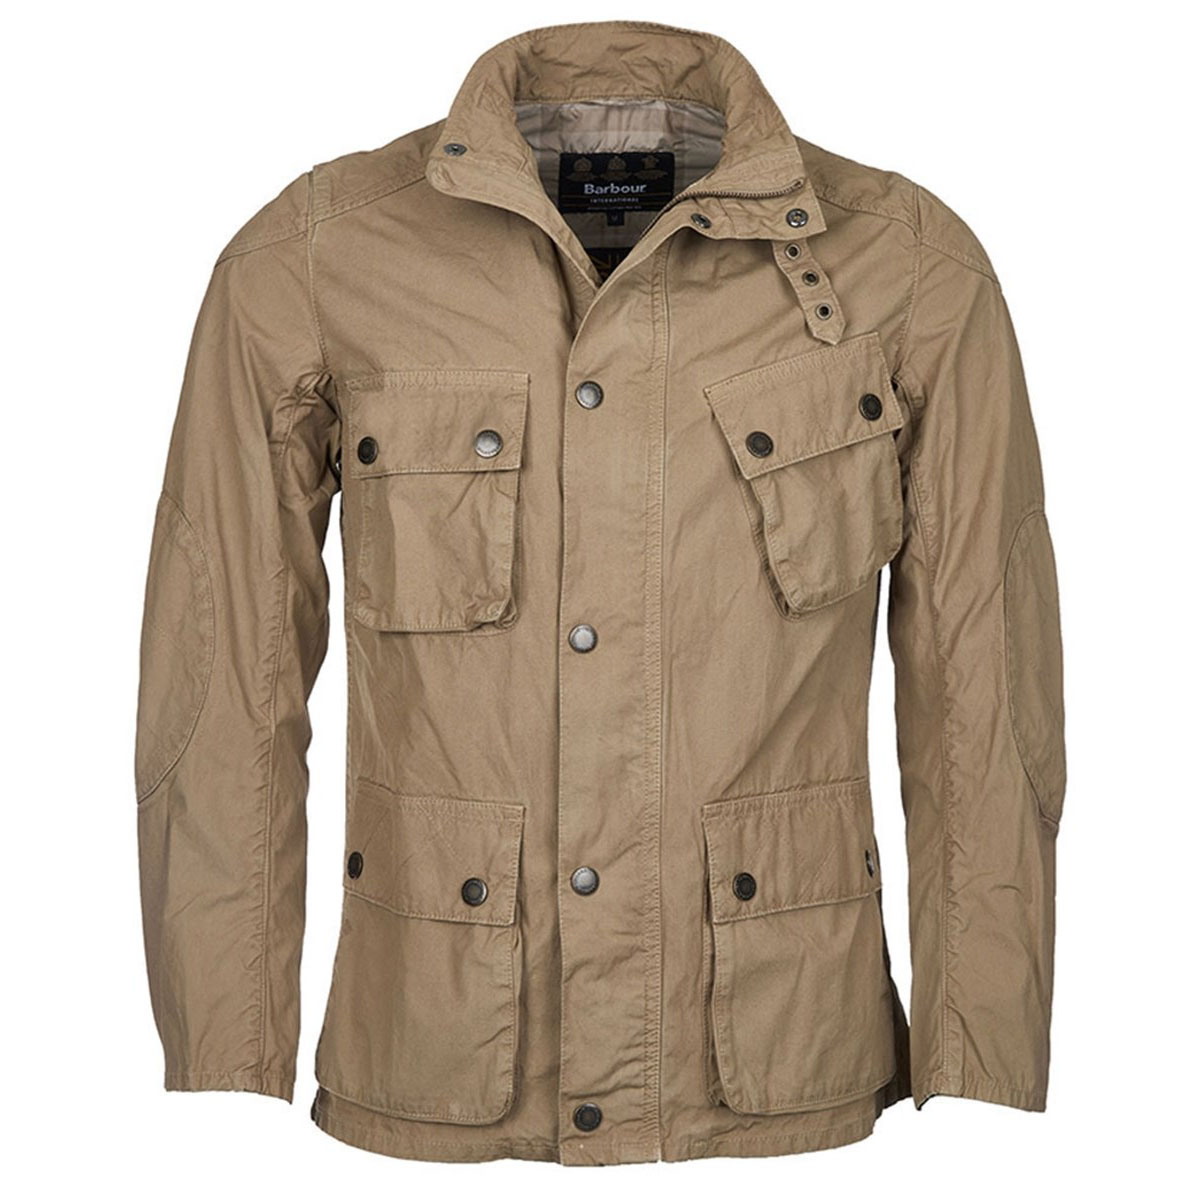 Barbour B.Intl Smokey Jacket Stone Barbour International: From the Ride to the Sun collection